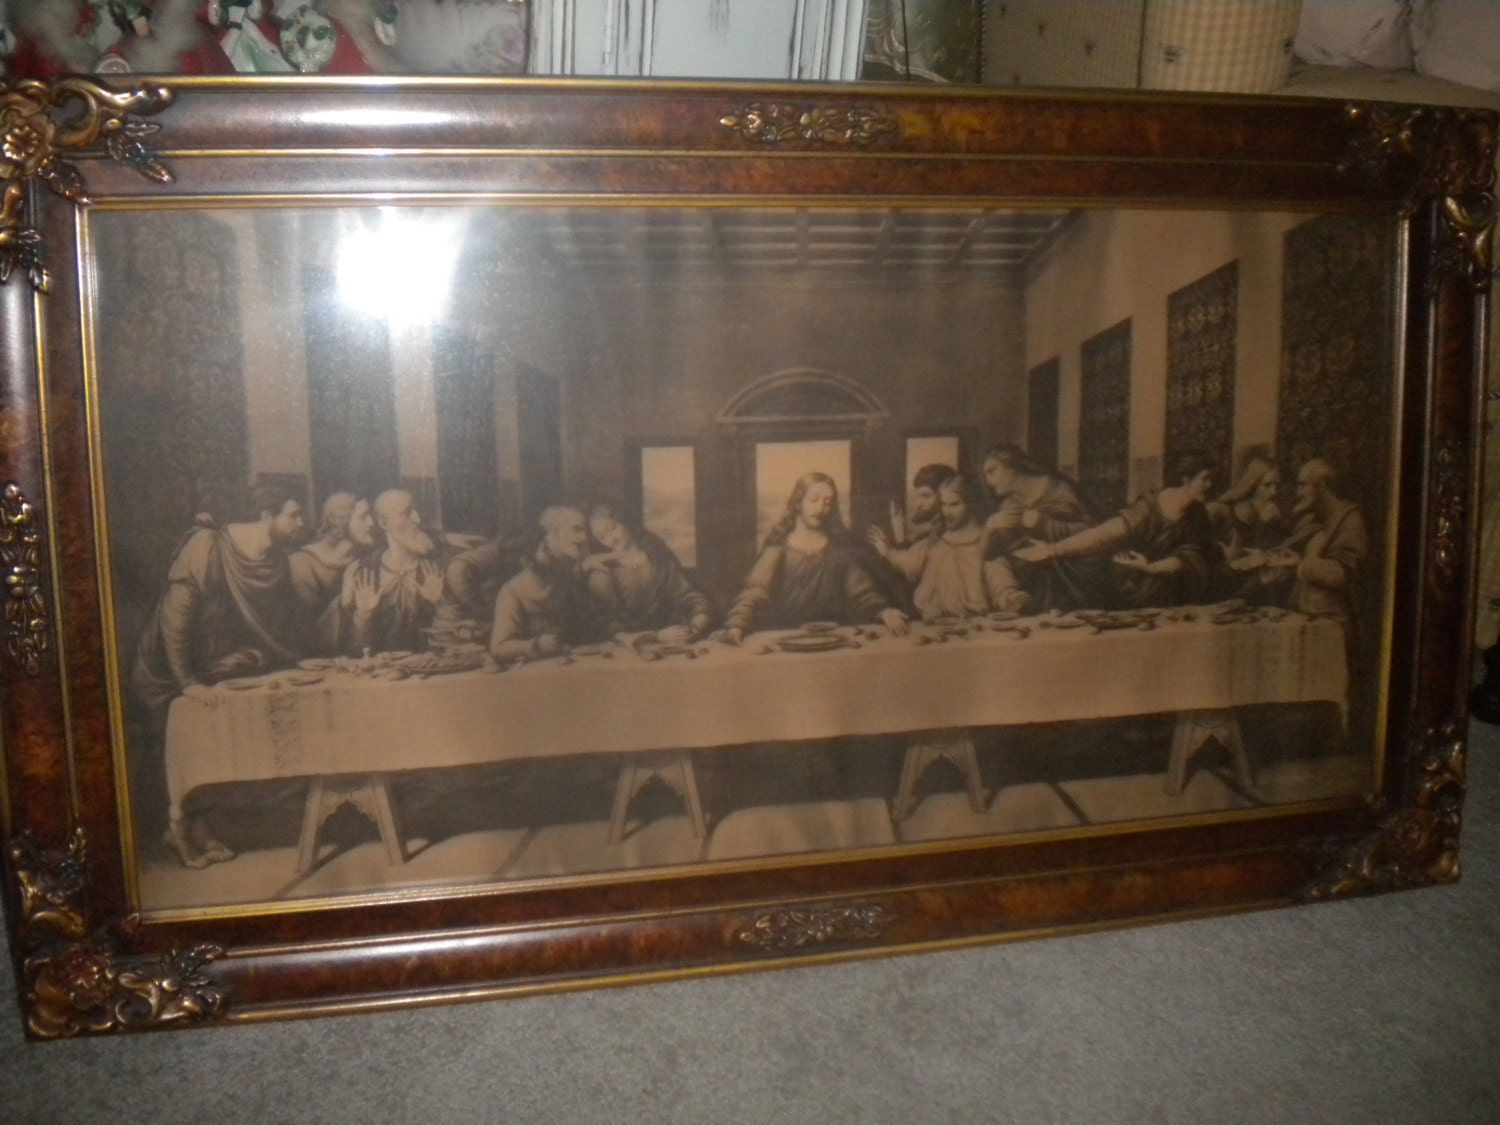 Antique Framed Last Supper Art Deco Wood Frame Vintage